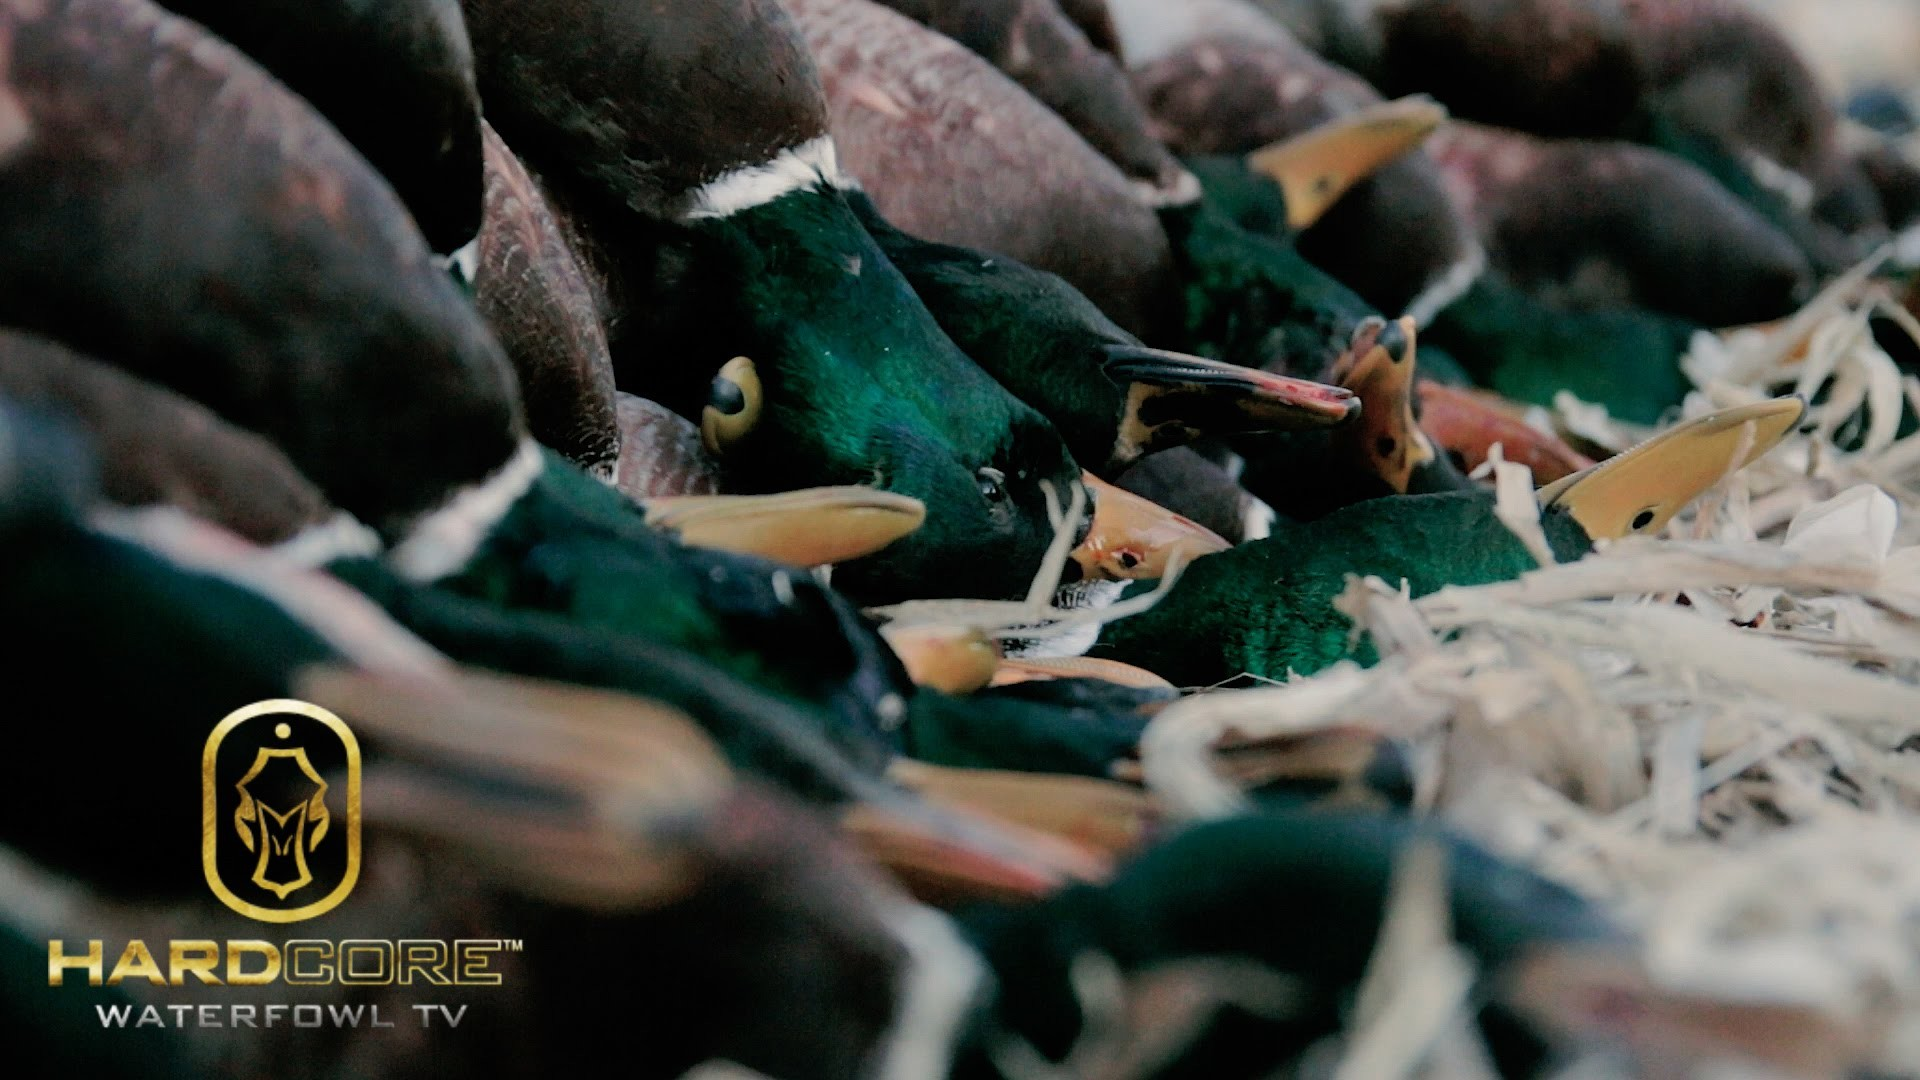 Res: 1920x1080, Duck Hunting: 10 Man Limit of Mallards - Hard Core Waterfowl TV Episode 3 -  YouTube